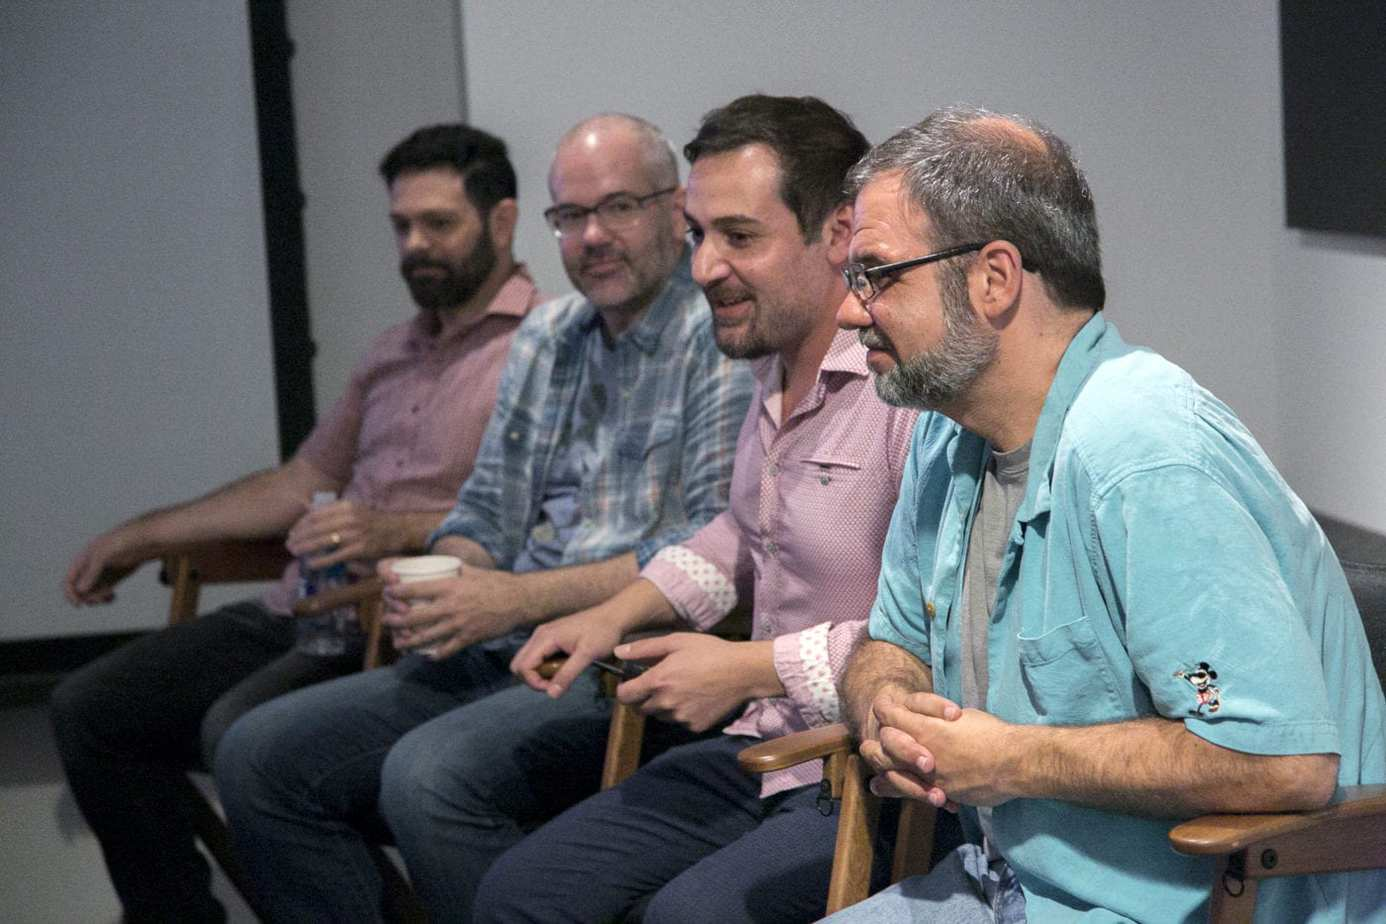 tight shot of Head of Animation Renato dos Anjos, Production Designer Cory Loftis, Crowds Supervisor Moe El-Ali and Production Designer Dave Komorowski as seen at the Long Lead Press Day for RALPH BREAKS THE INTERNET at Walt Disney Animation Studios on July 31, 2018. Photo by Alex Kang/Disney. ©2018 Disney. All Rights Reserved.